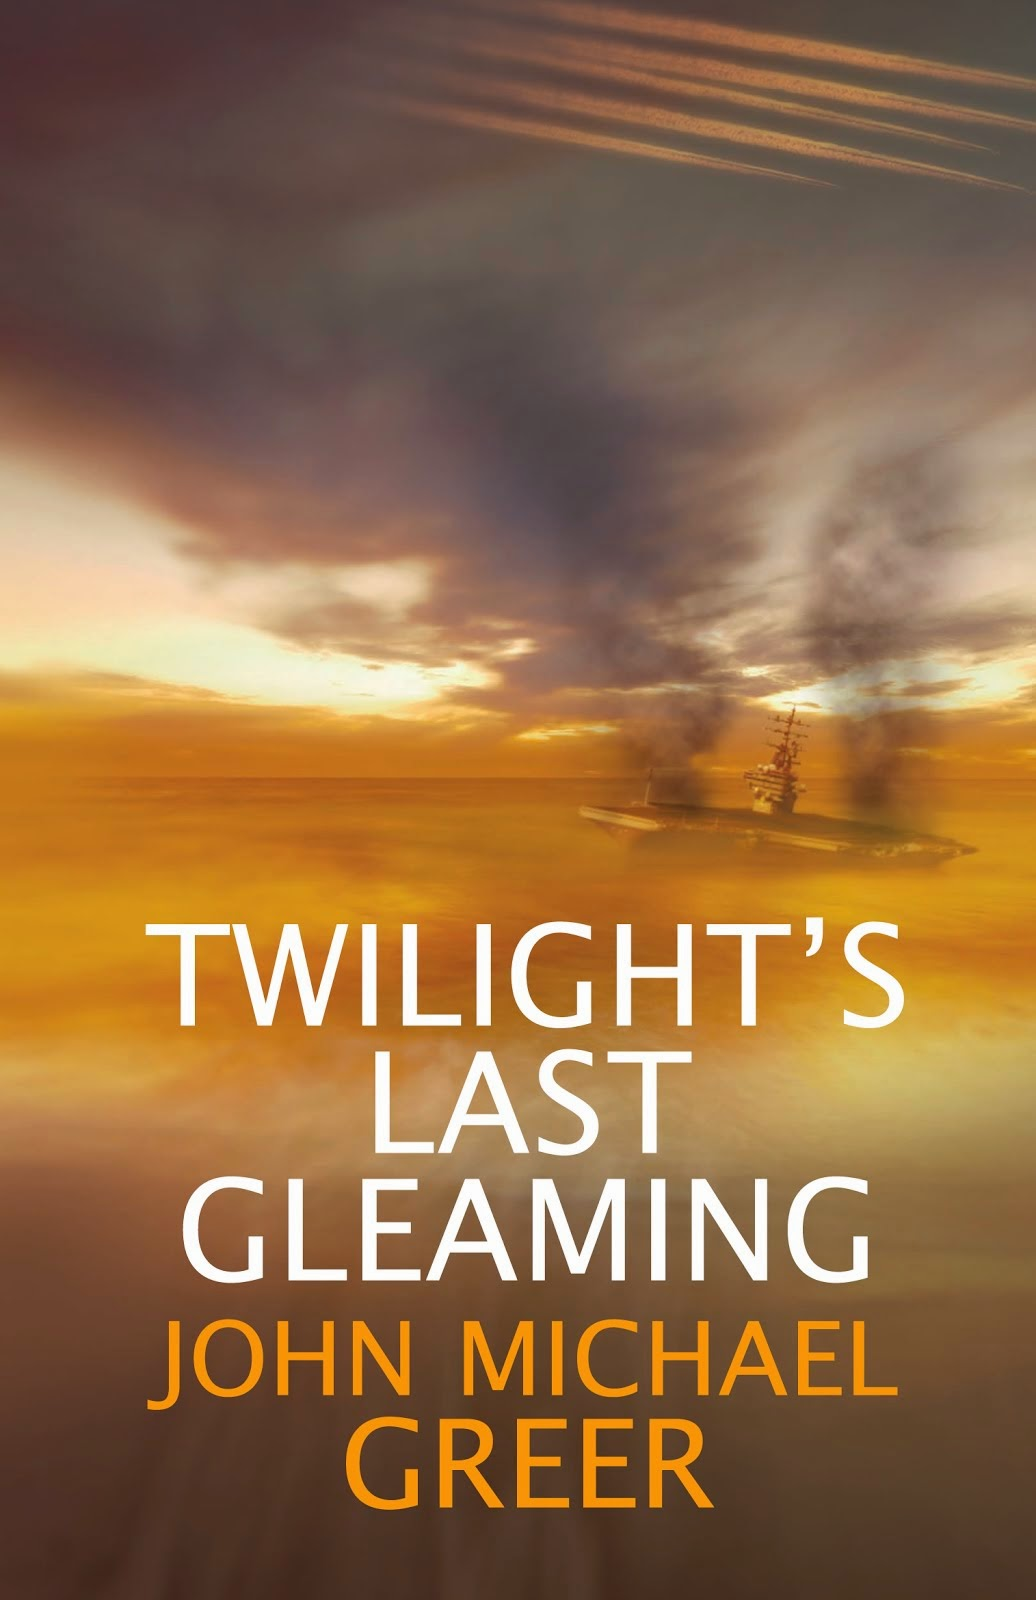 Twilight's Last Gleaming